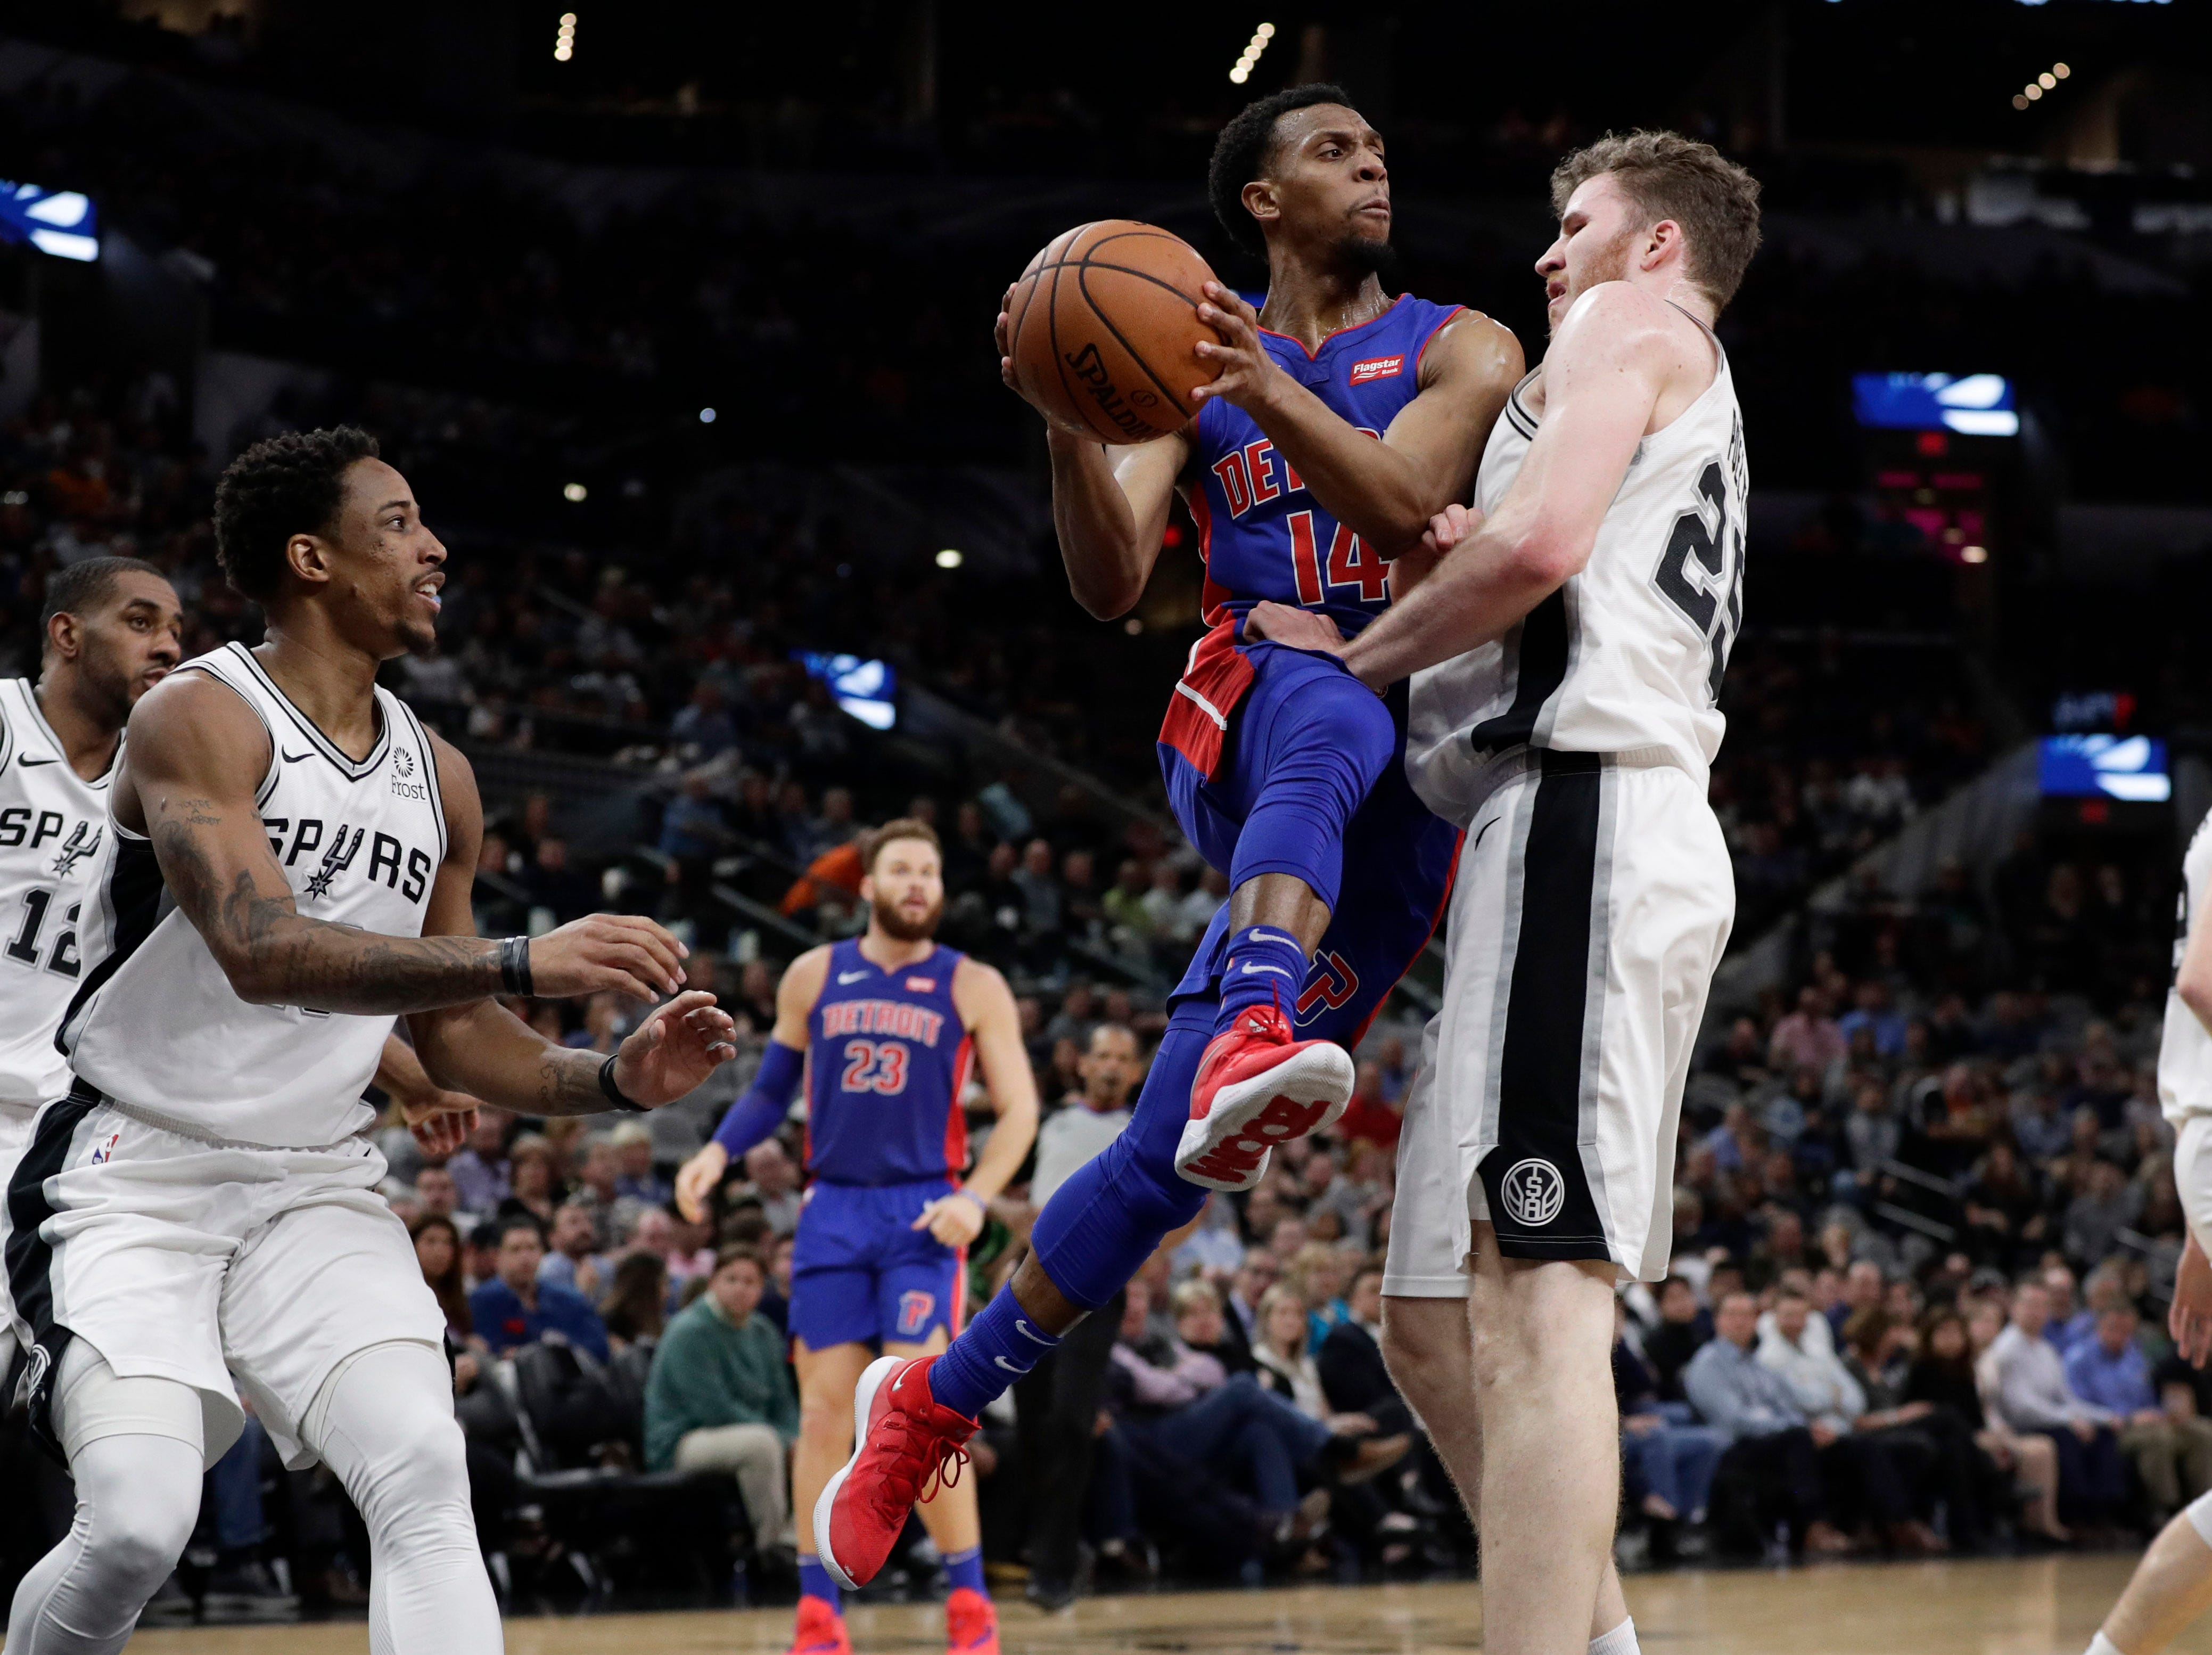 Detroit Pistons guard Ish Smith (14) crashes into San Antonio Spurs center Jakob Poeltl (25) as he drives with ball during the first half.